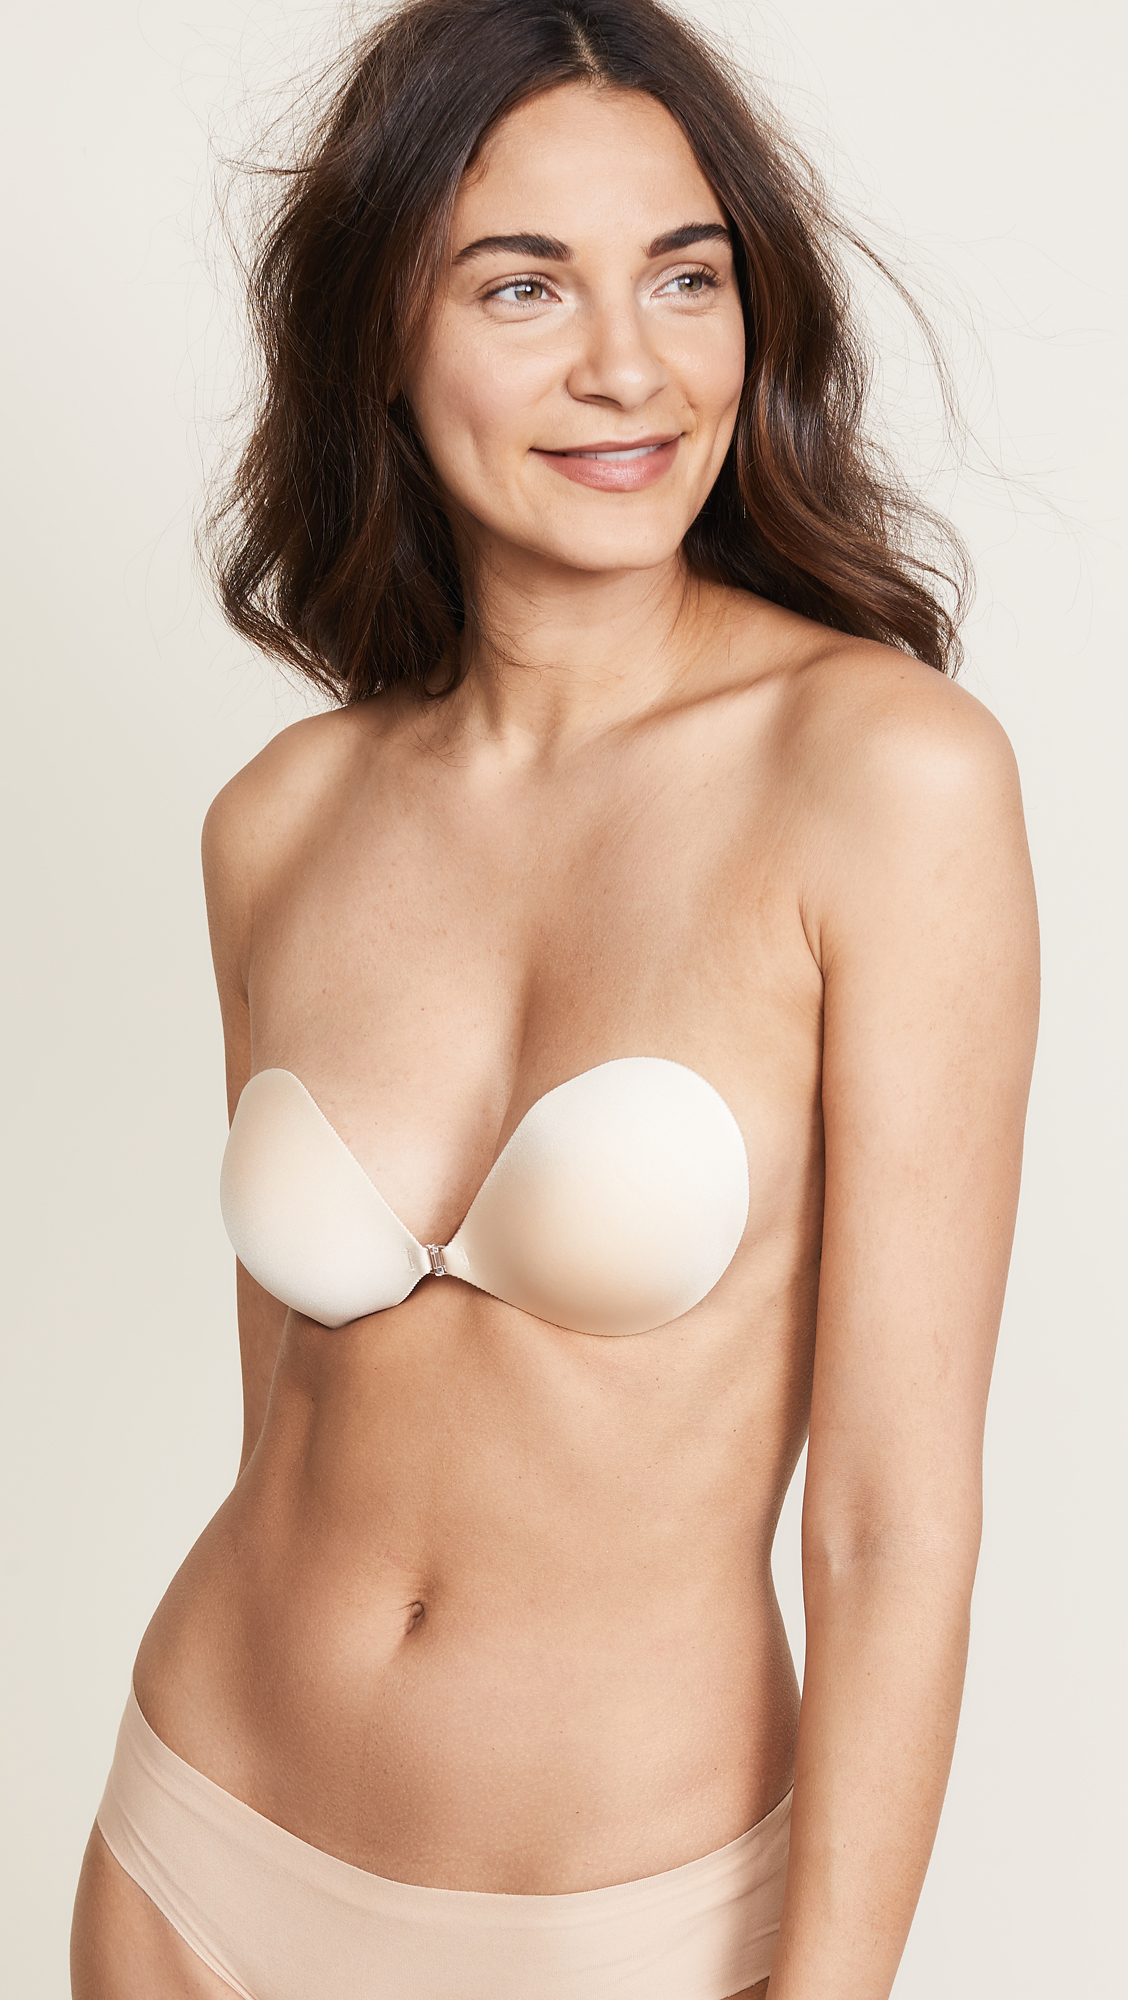 ddb4e7f31 NuBra Seamless Push Up Bra